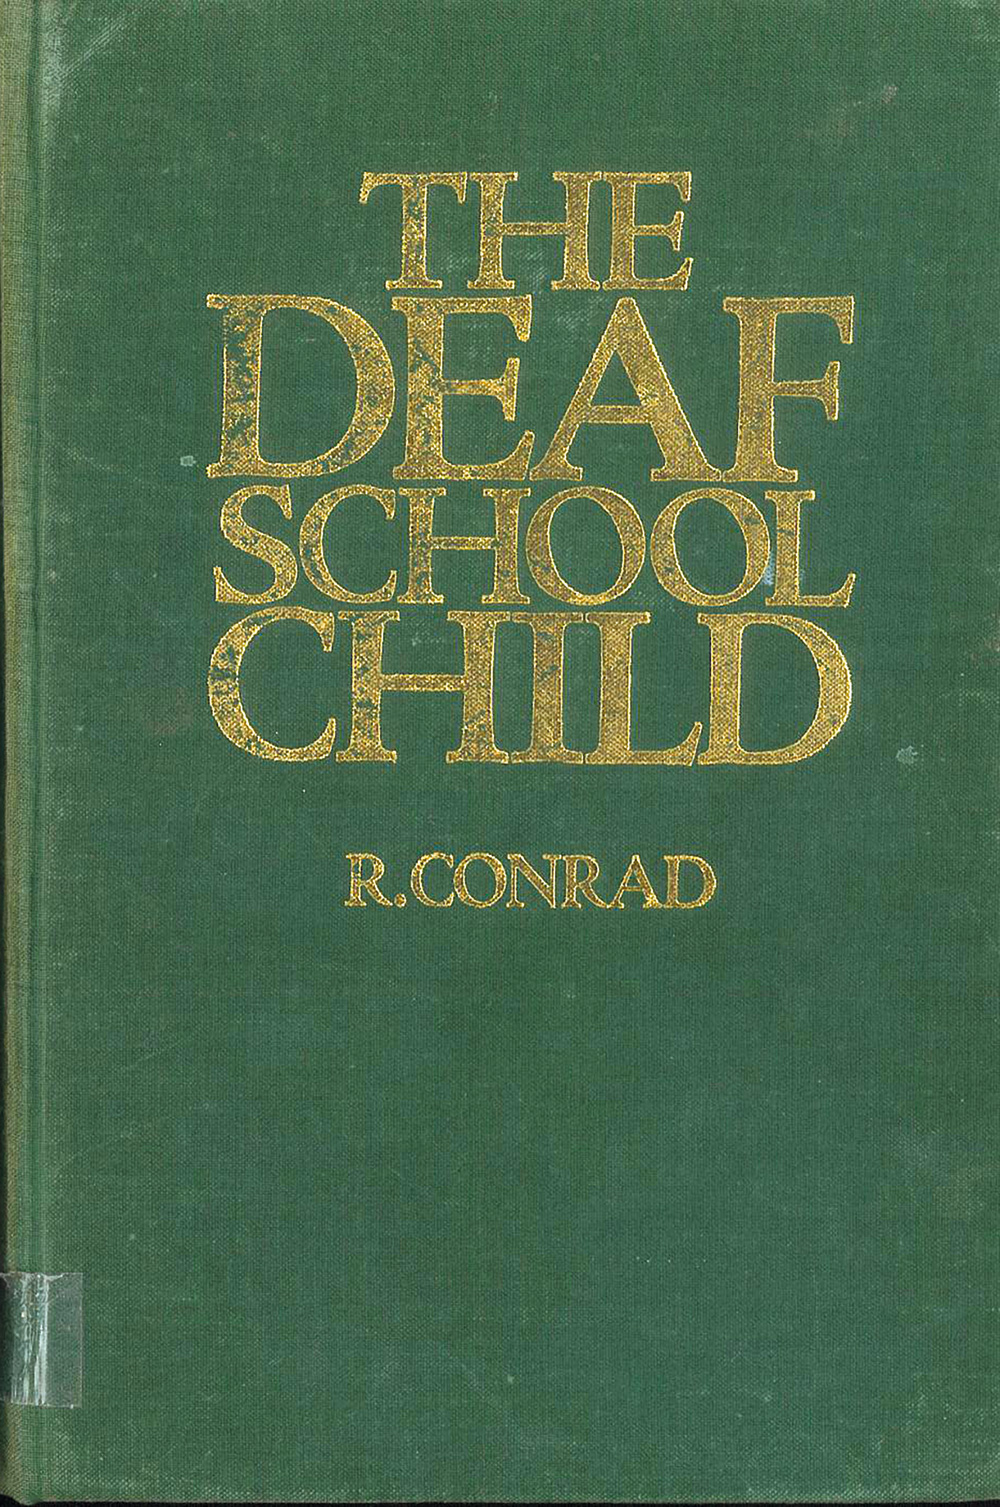 the deaf school child book conrad